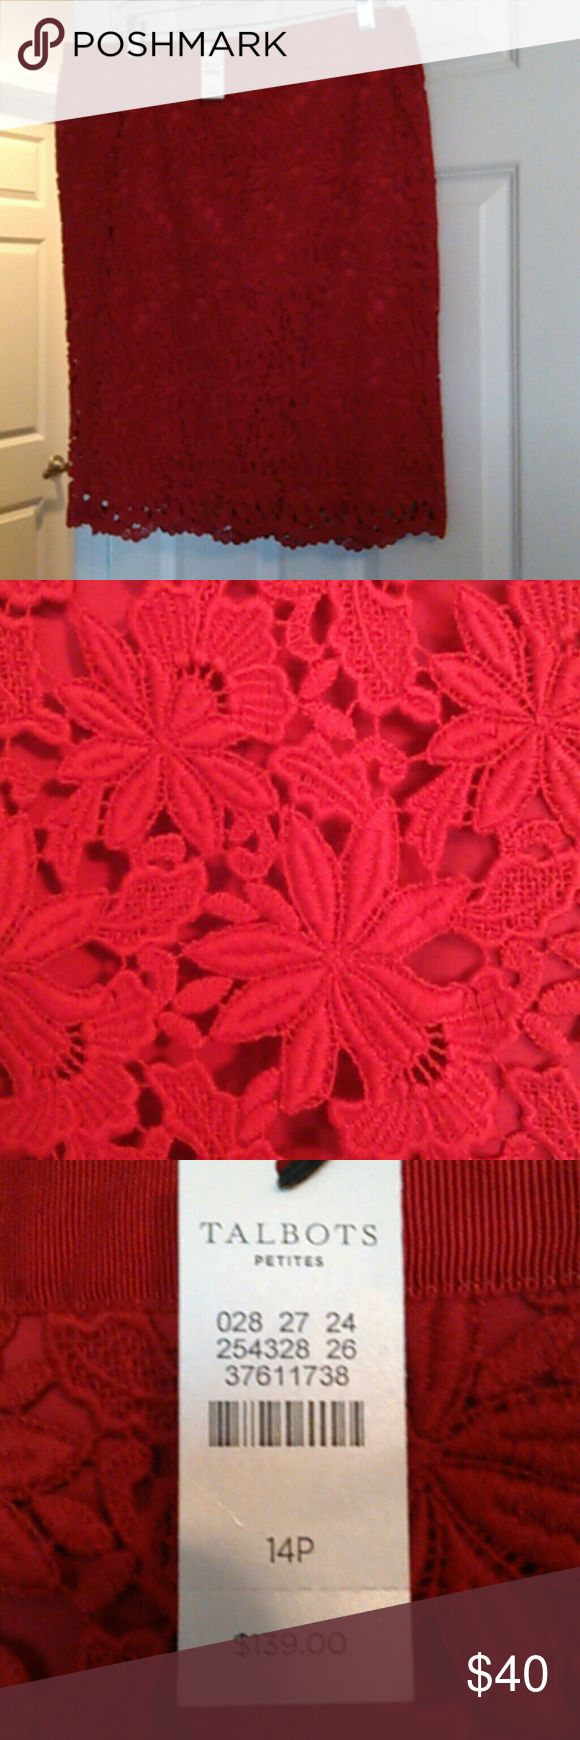 LAST CHANCE NWT Talbot's red lace pencil skirt 14P Beautiful cotton race bright red fully lined back zip with vent a stunning skirt Talbots Skirts Pencil